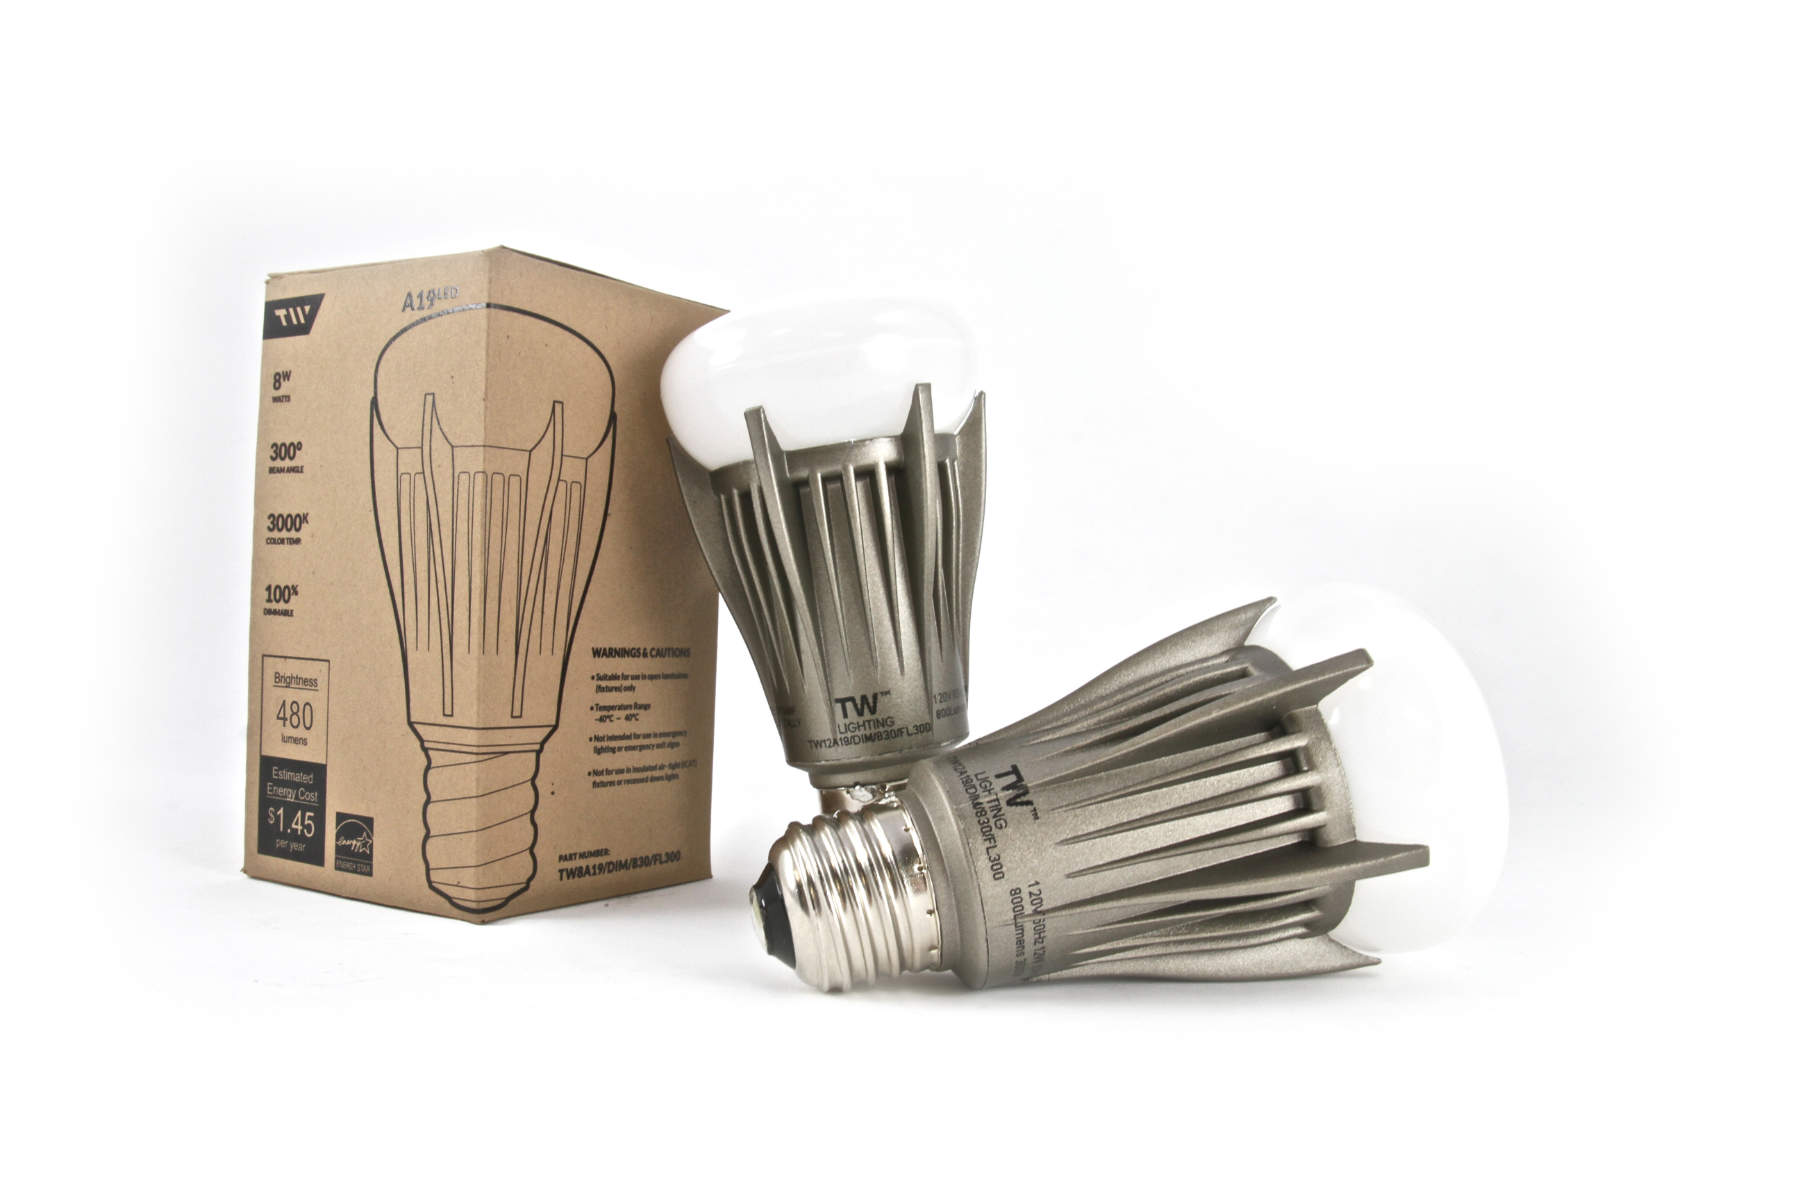 Packaging and physical sample of TW Lighting's A19LED bulb.